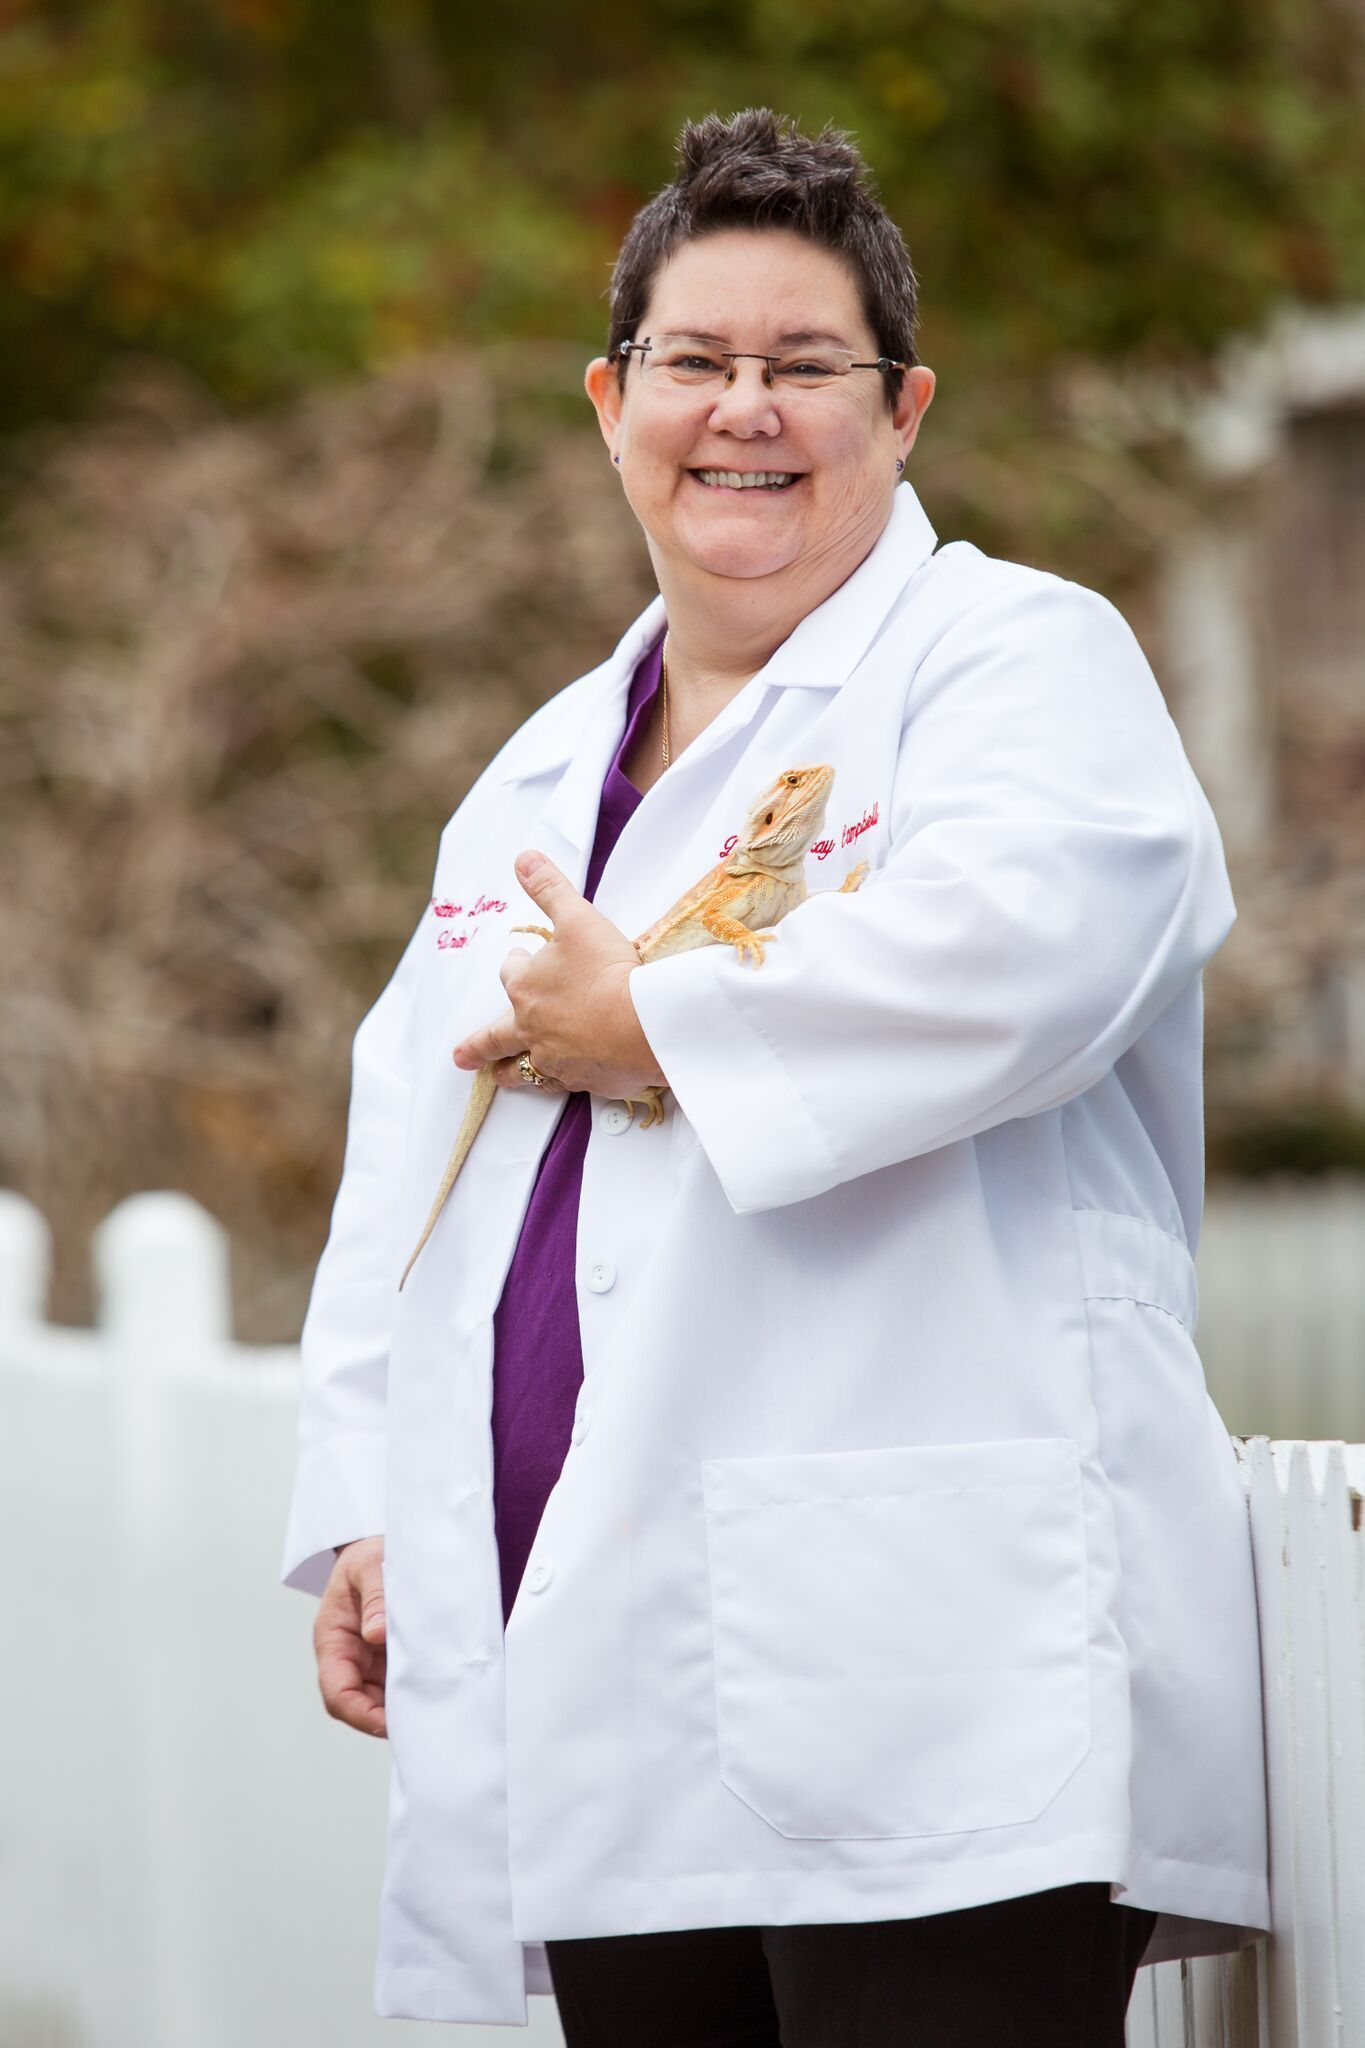 MARY C. CAMPBELL, DVM, VETERINARIANN